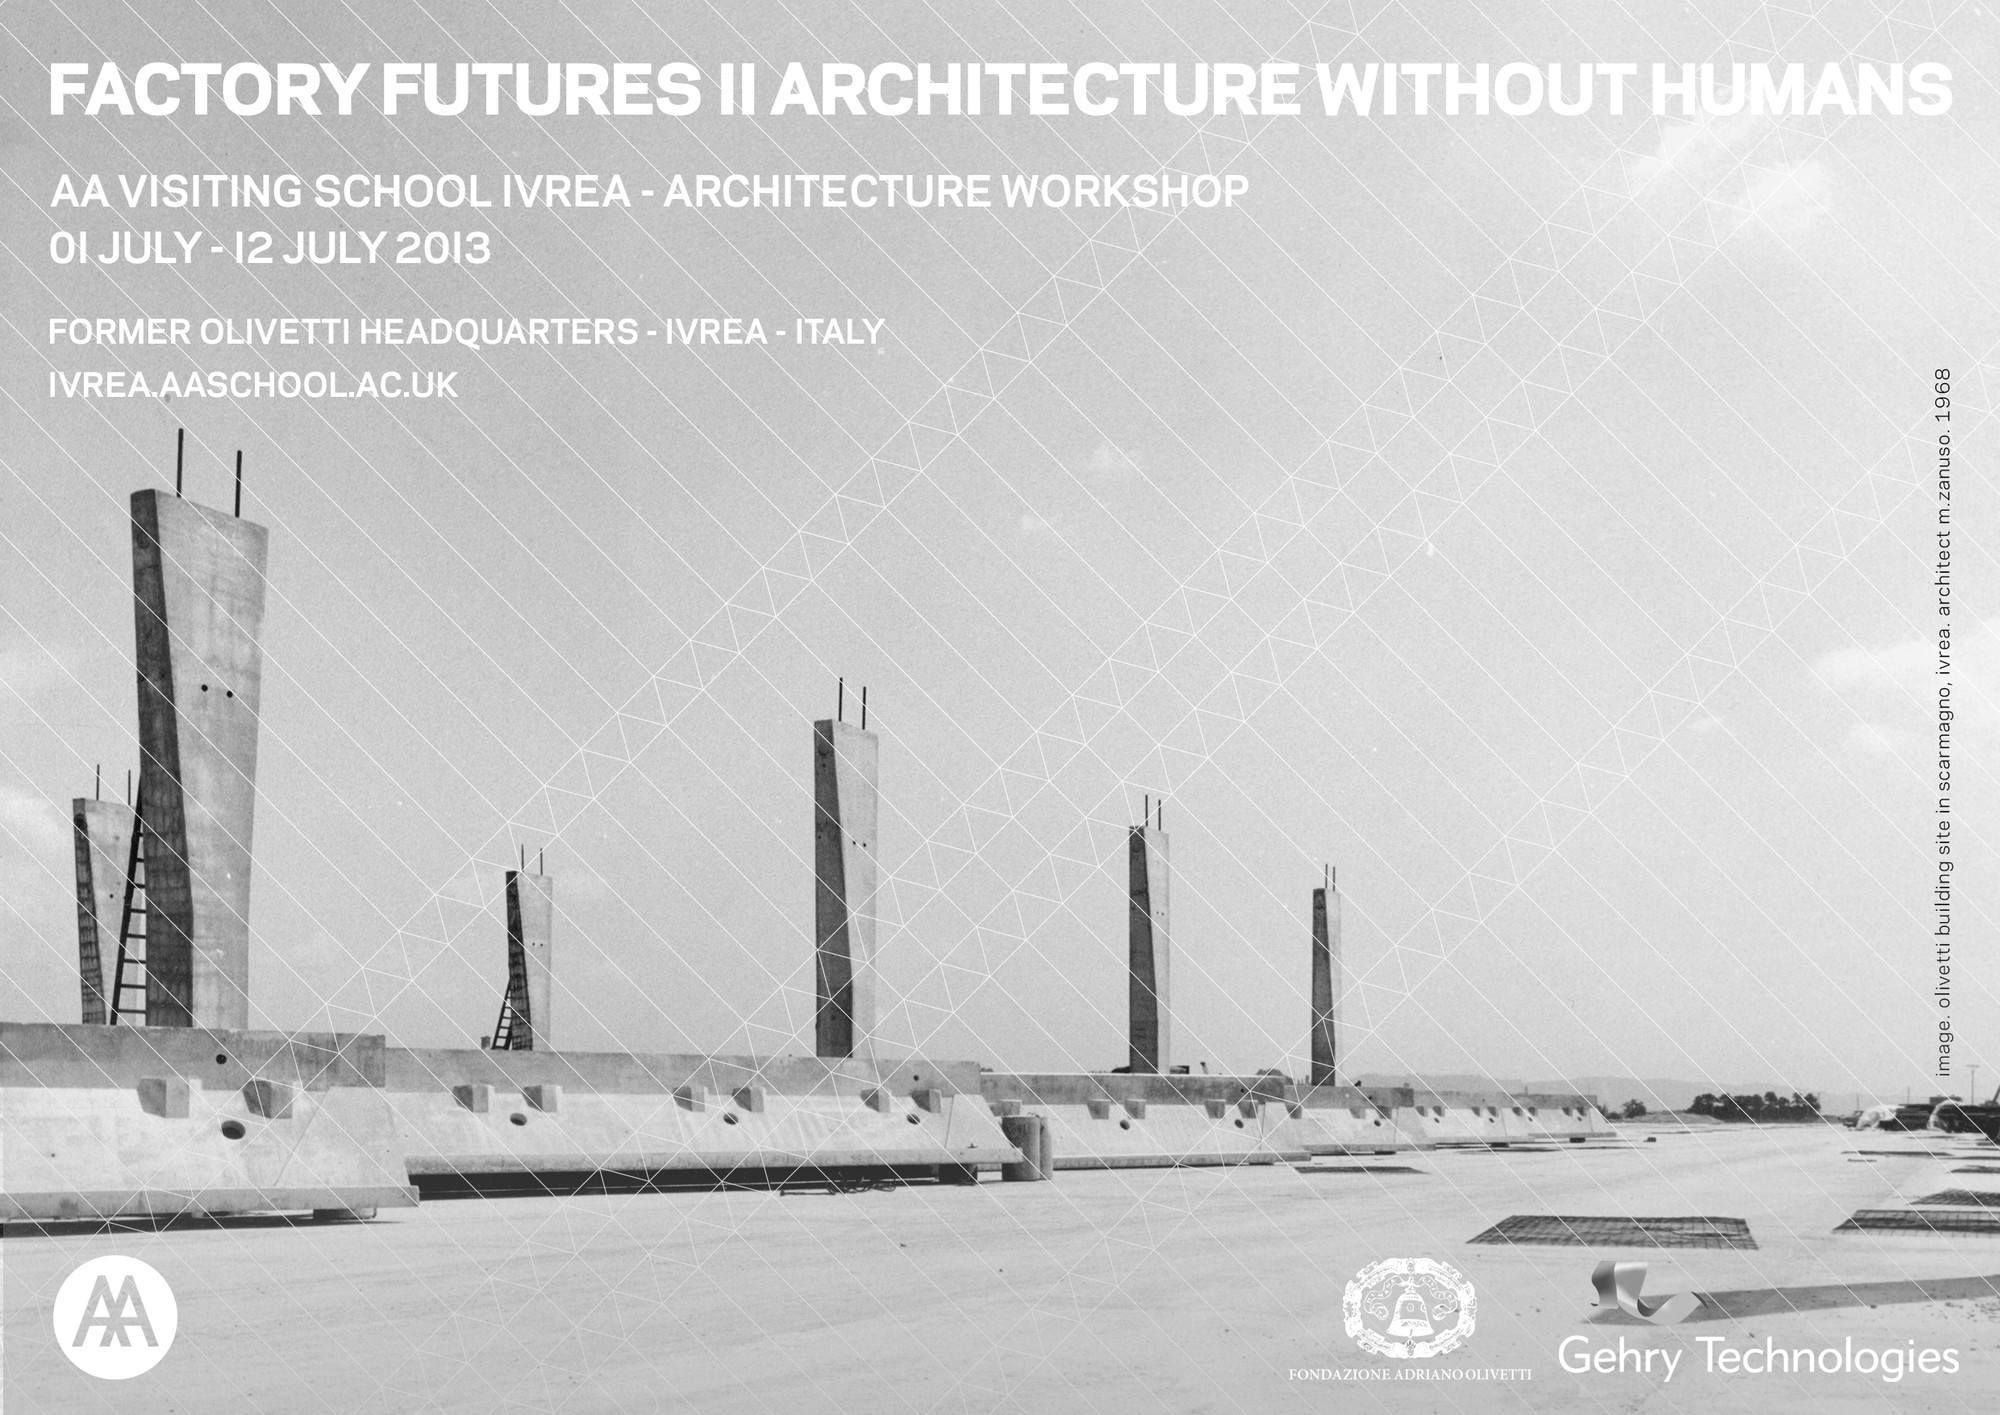 AA Visiting School Ivrea: 'Factory Futures II Architecture Without Humans', Courtesy of AA Ivrea Visiting School